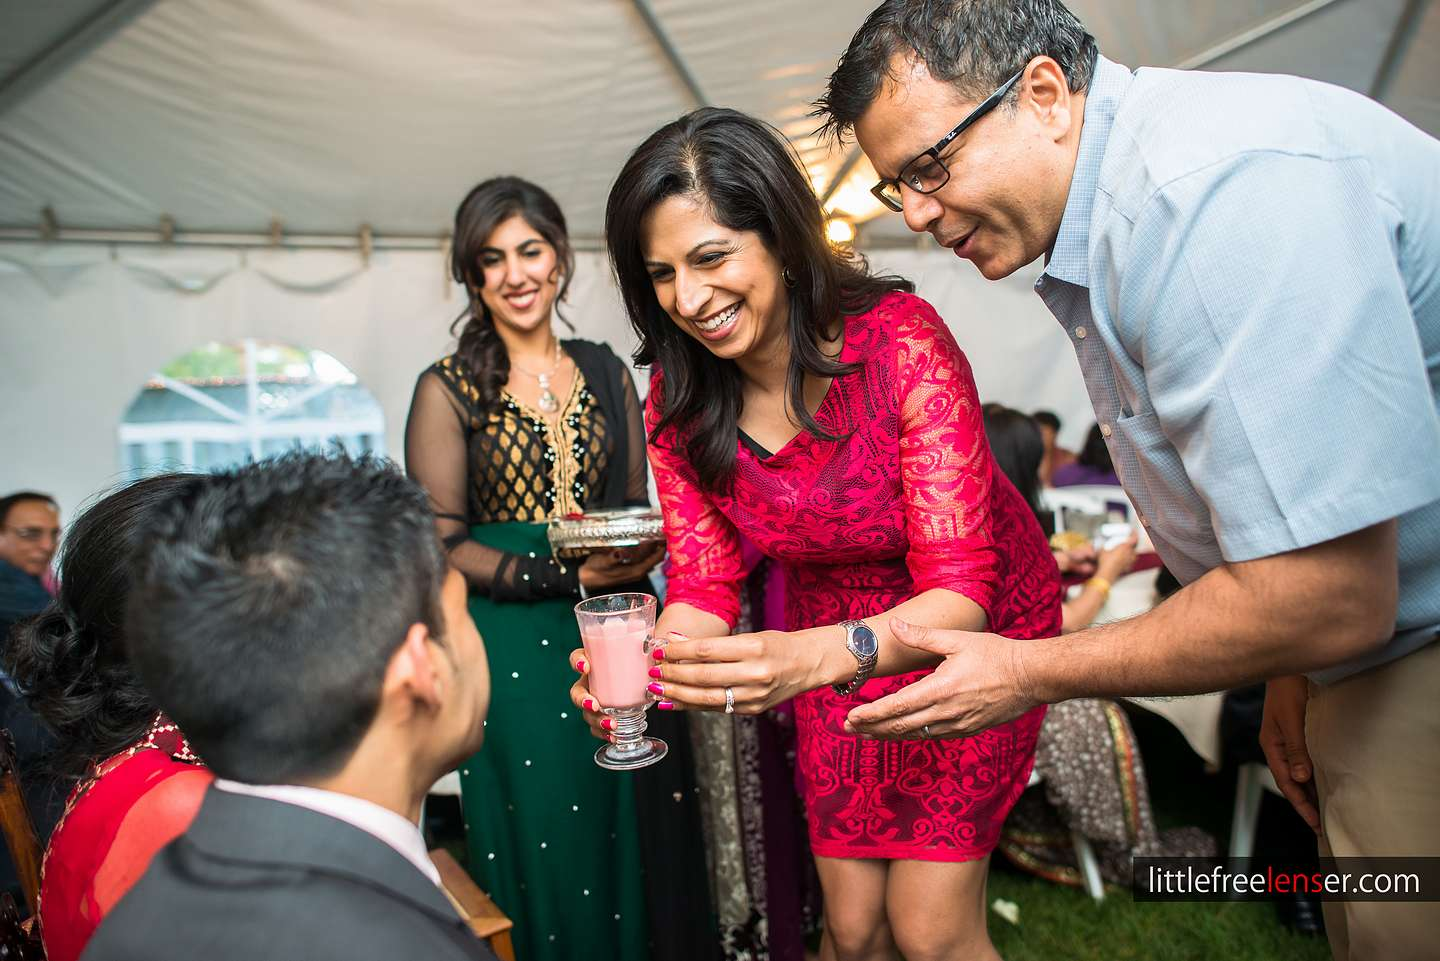 tn_alisha&ayaz_engagementparty_18